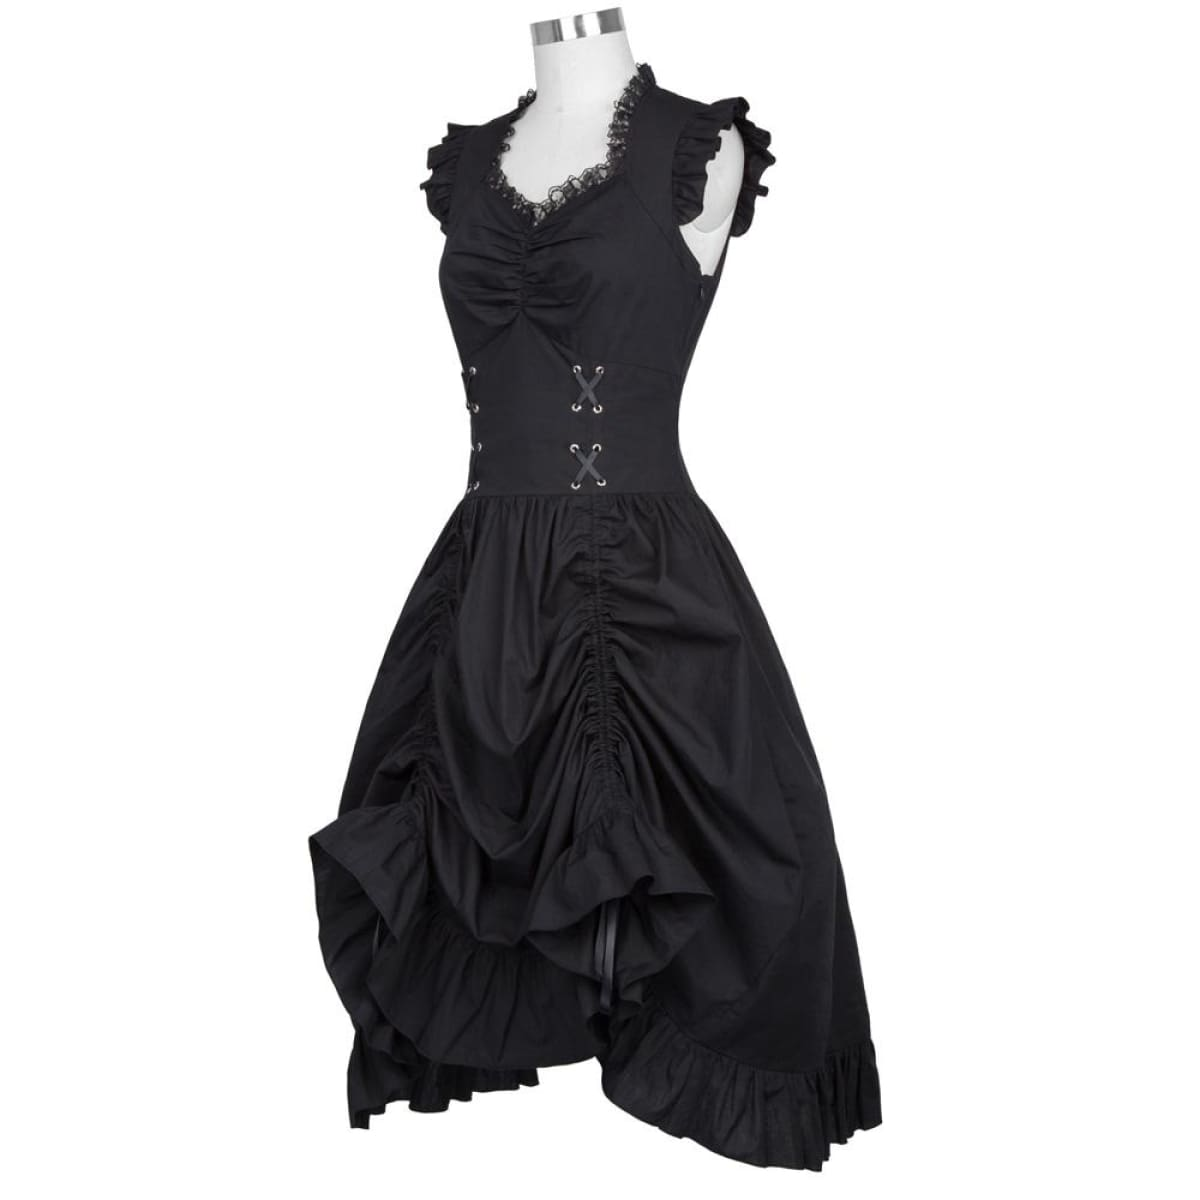 B Poque Steampunk Black Punk Gothic Victorian Dress Sleeveless V ...